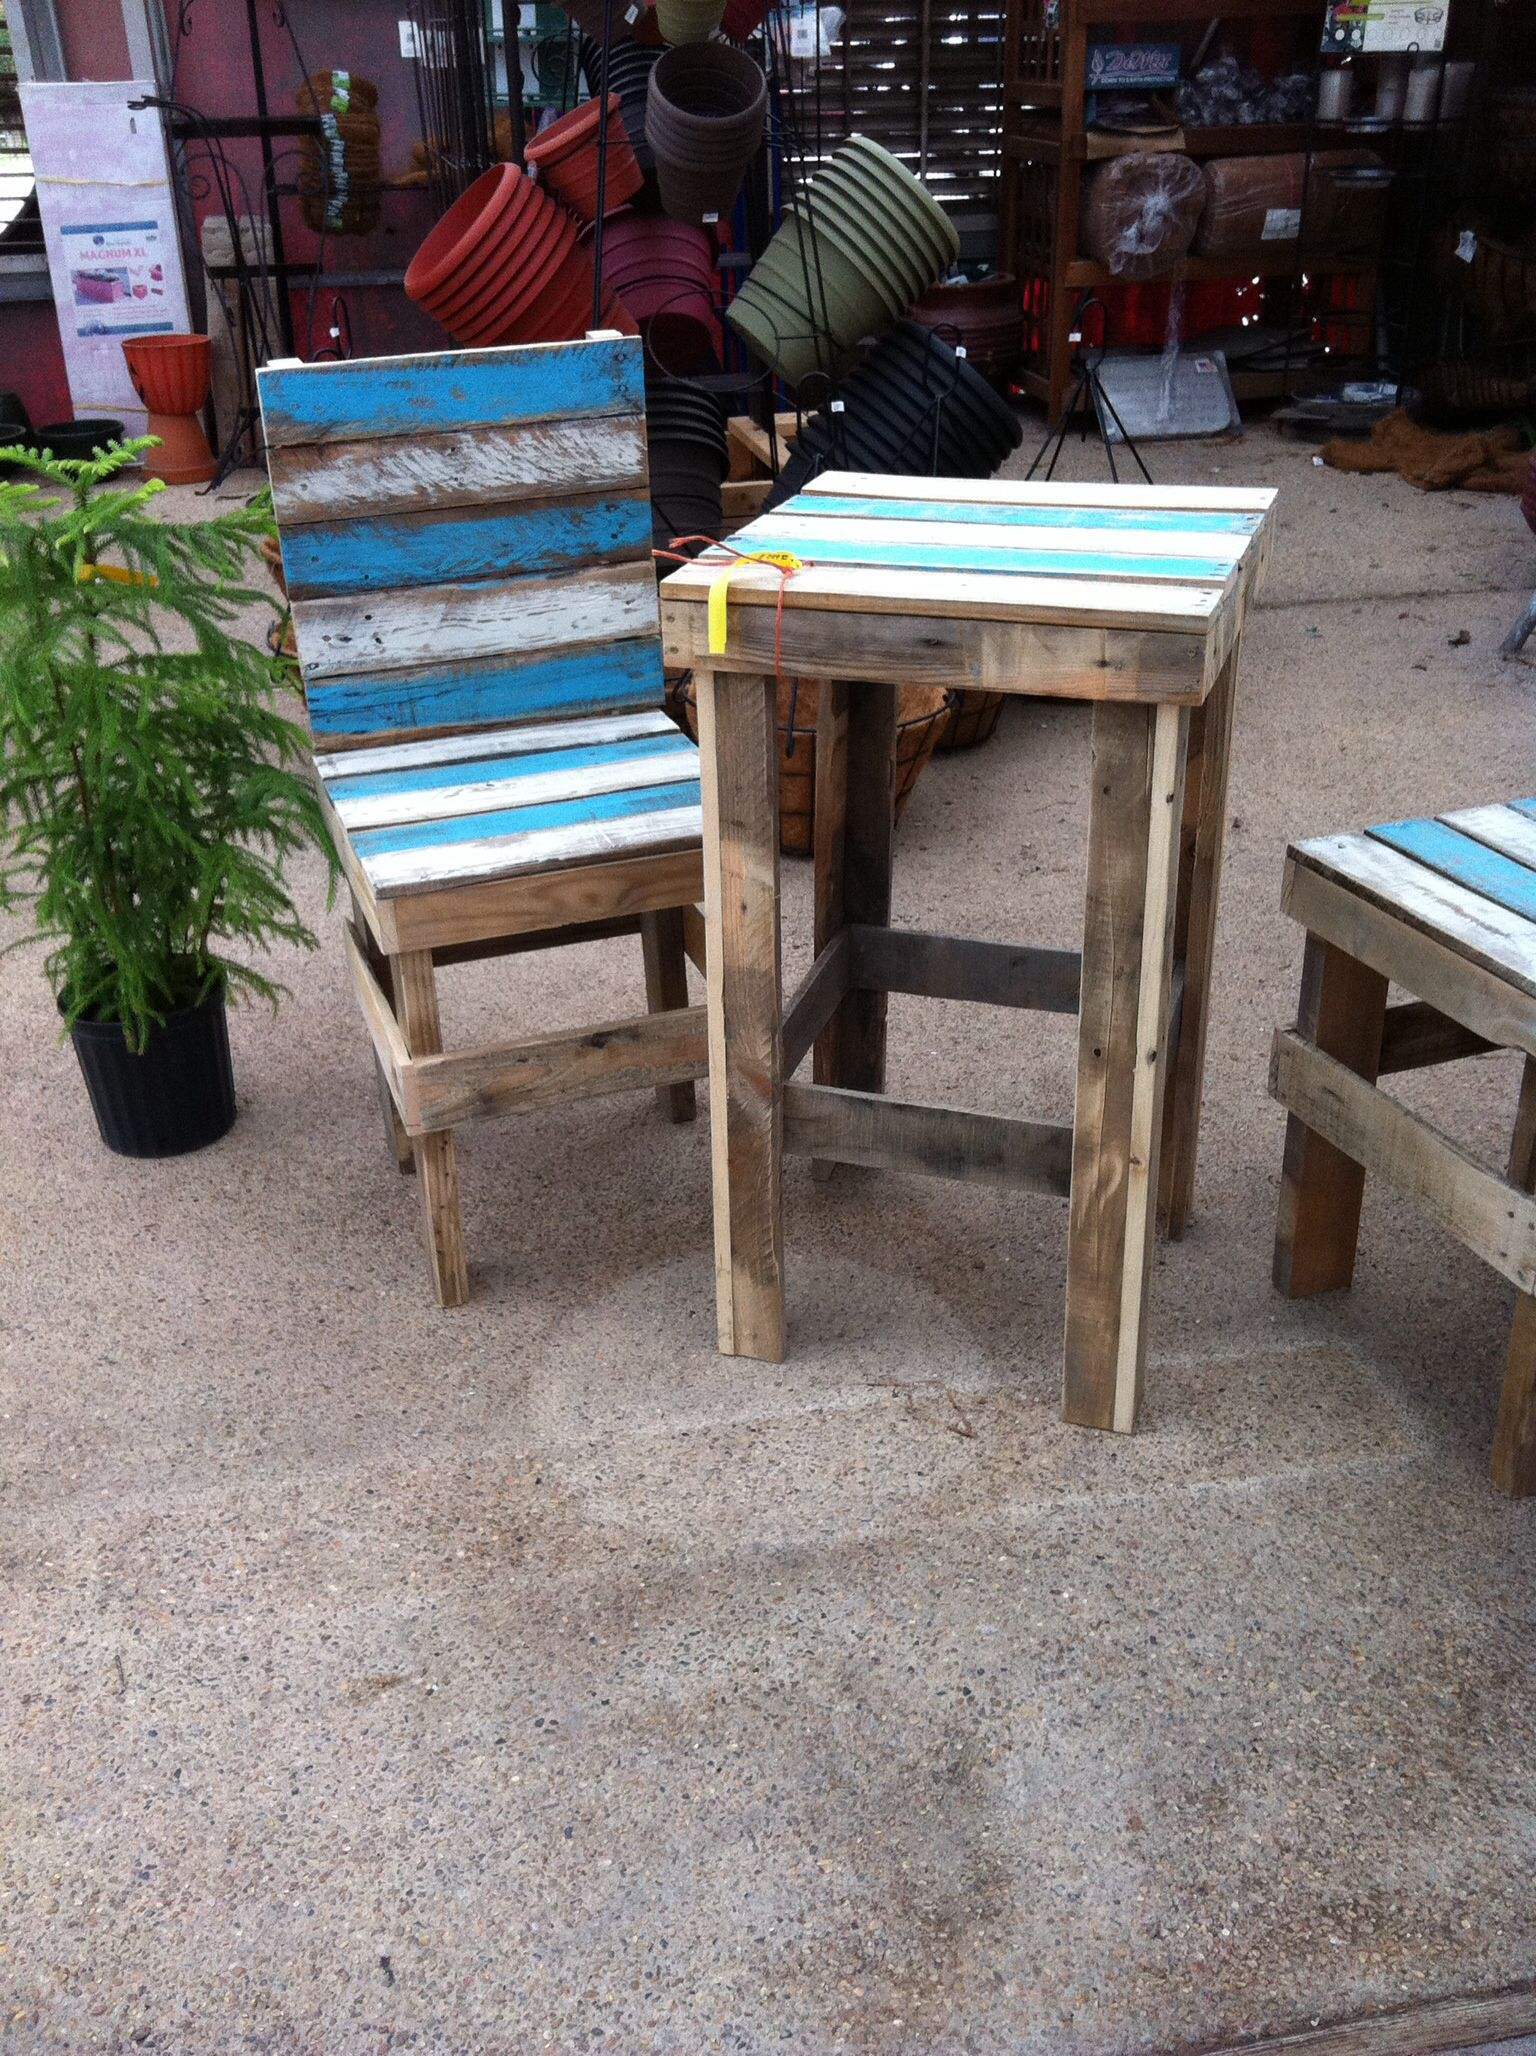 Co Op Garden Furniture Patio furniture made from pallets lauderdale co co op meridian ms patio furniture made from pallets lauderdale co co op meridian ms workwithnaturefo